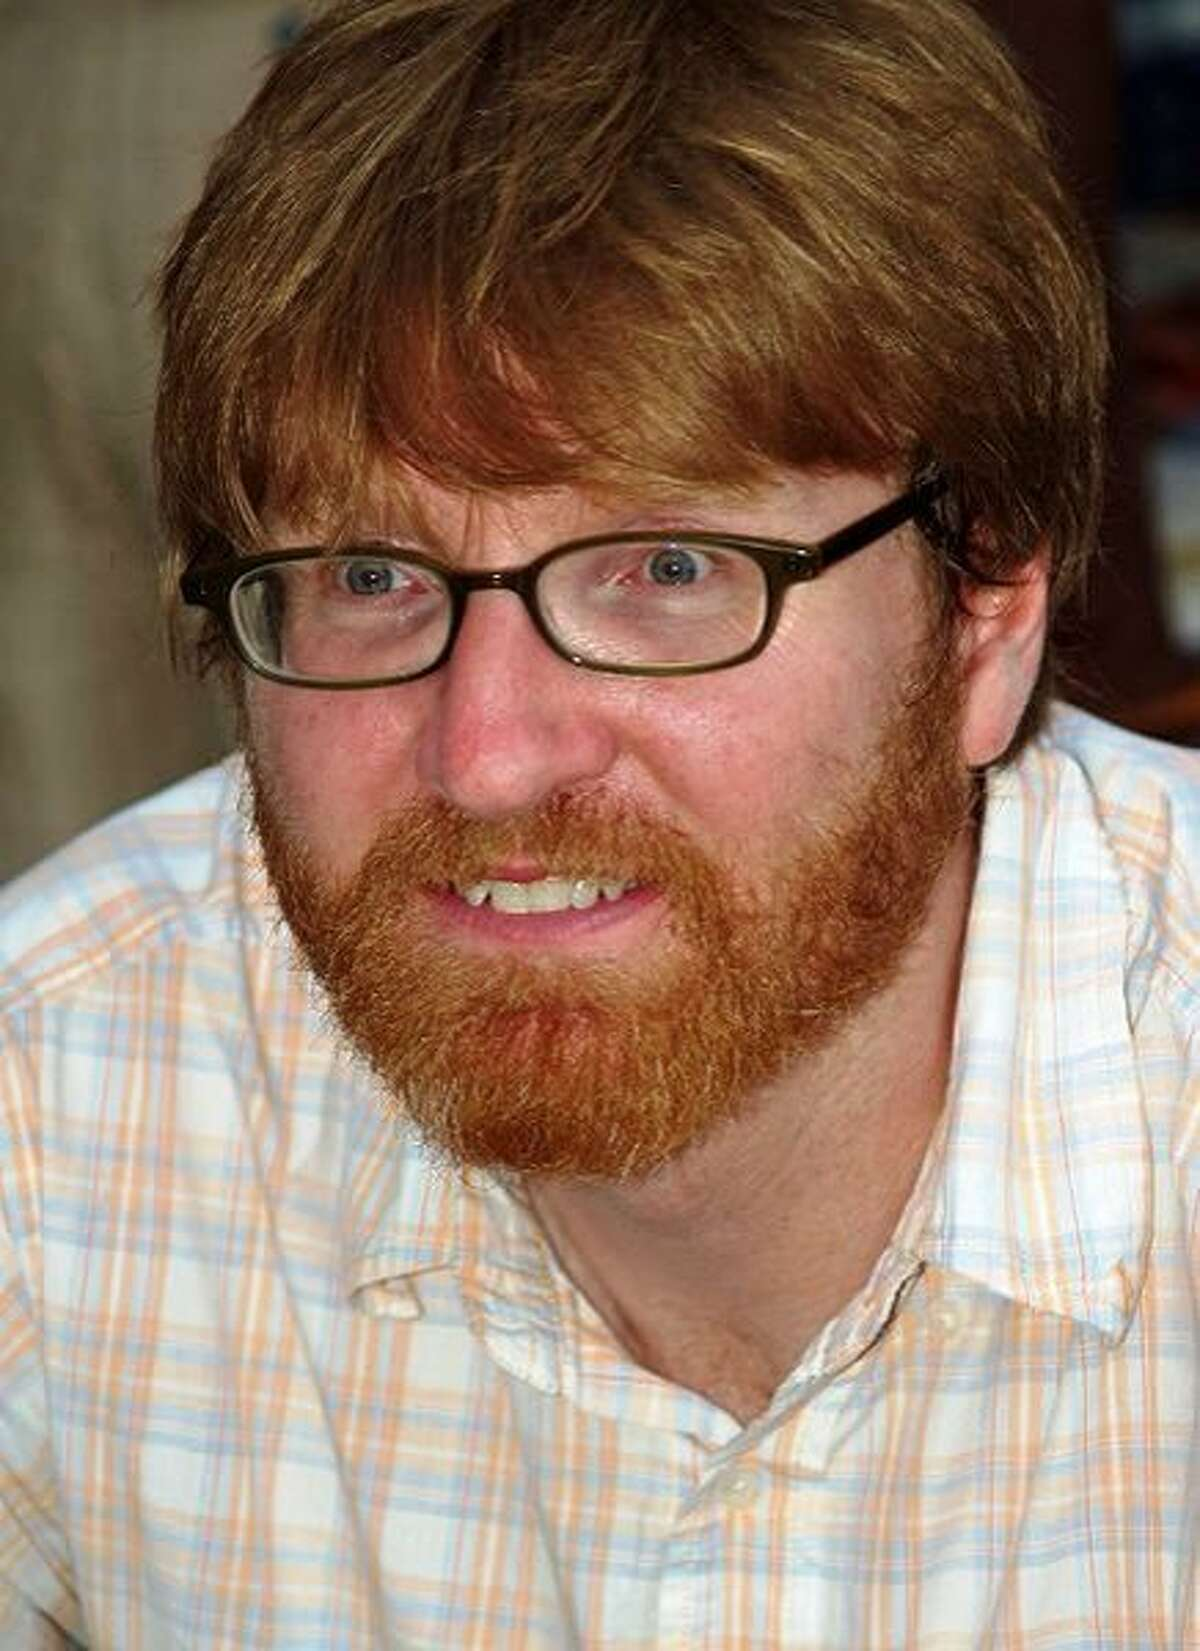 Author Chuck Klosterman speaks on pop culture at Trinity University as part of the Stieren Arts Enrichment Series.